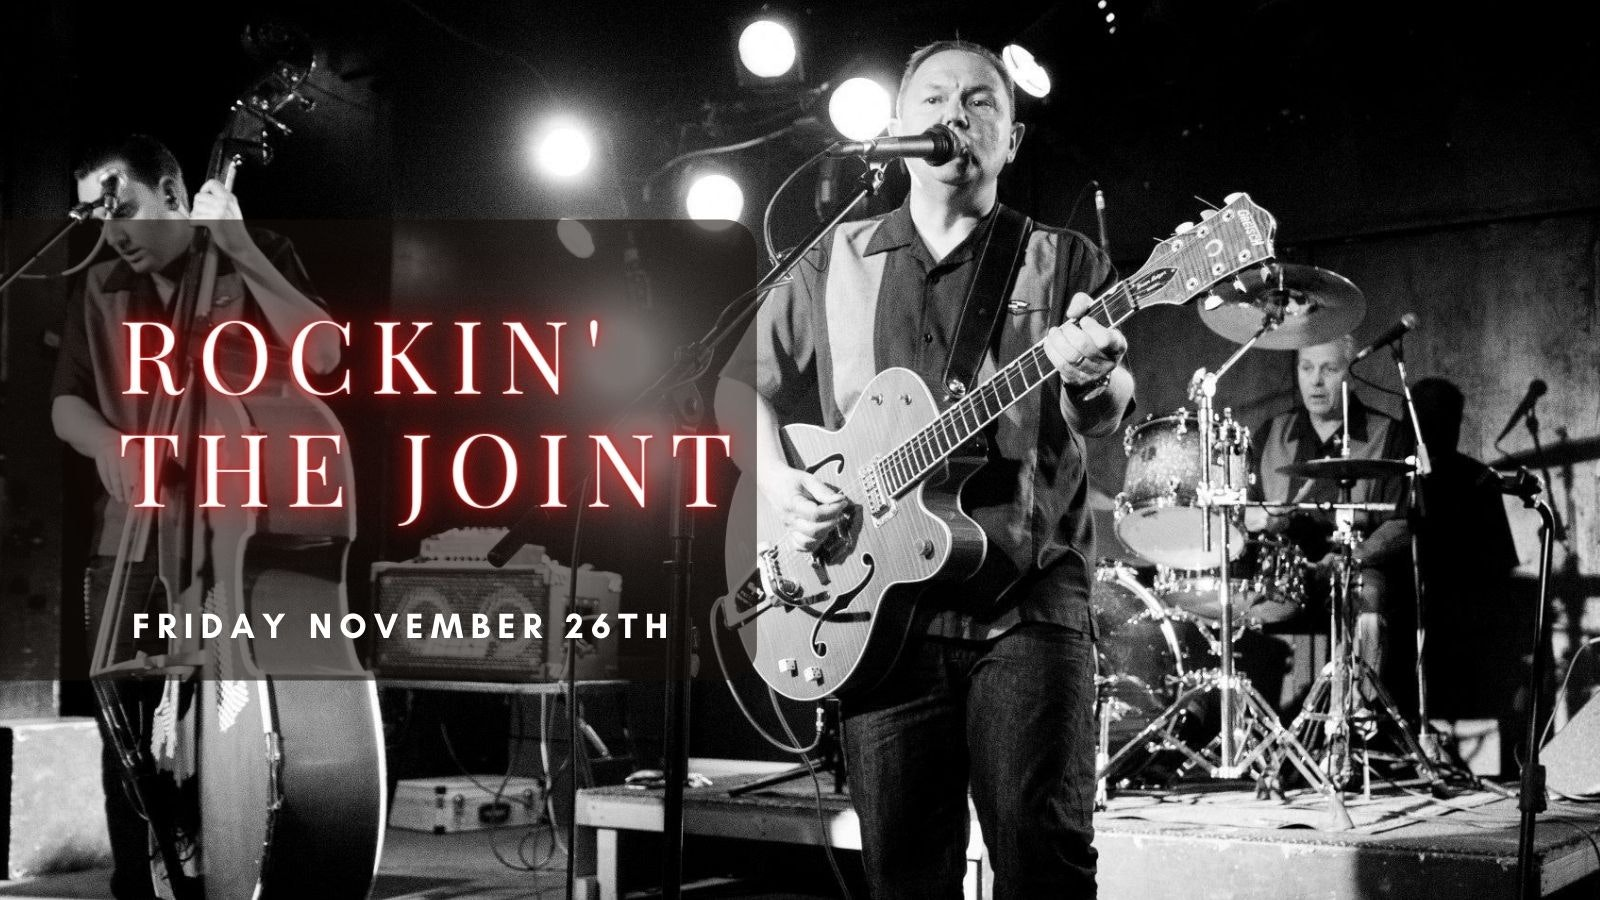 ROCKIN' THE JOINT | Plymouth, Annabel's Cabaret & Discotheque